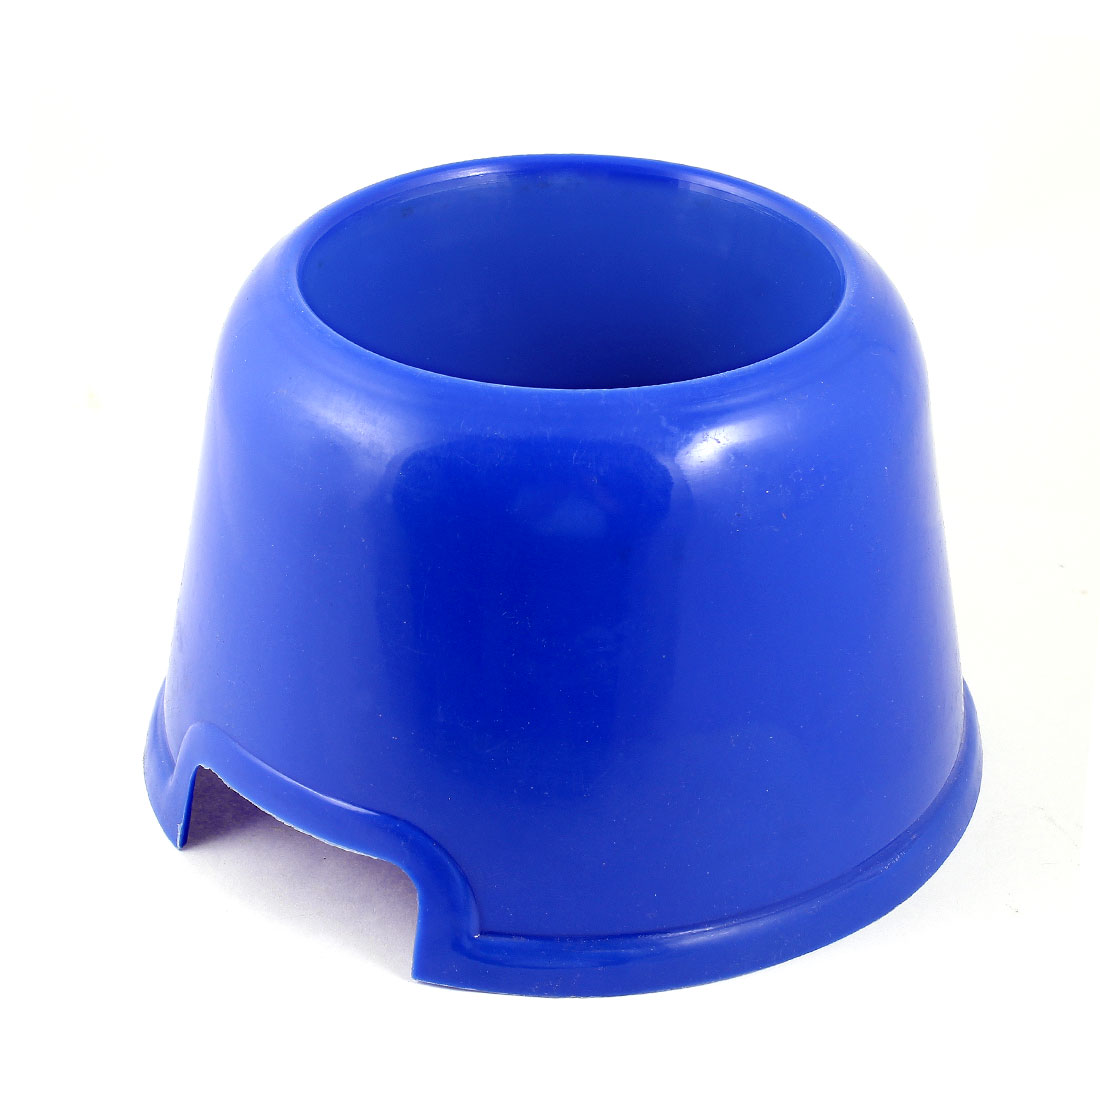 11.5cm Dia 7cm Depth Puppy Dog Cat Pet Plastic Feed Bowl Round Shape Dinner Food Water Feeder Tool Dark Blue